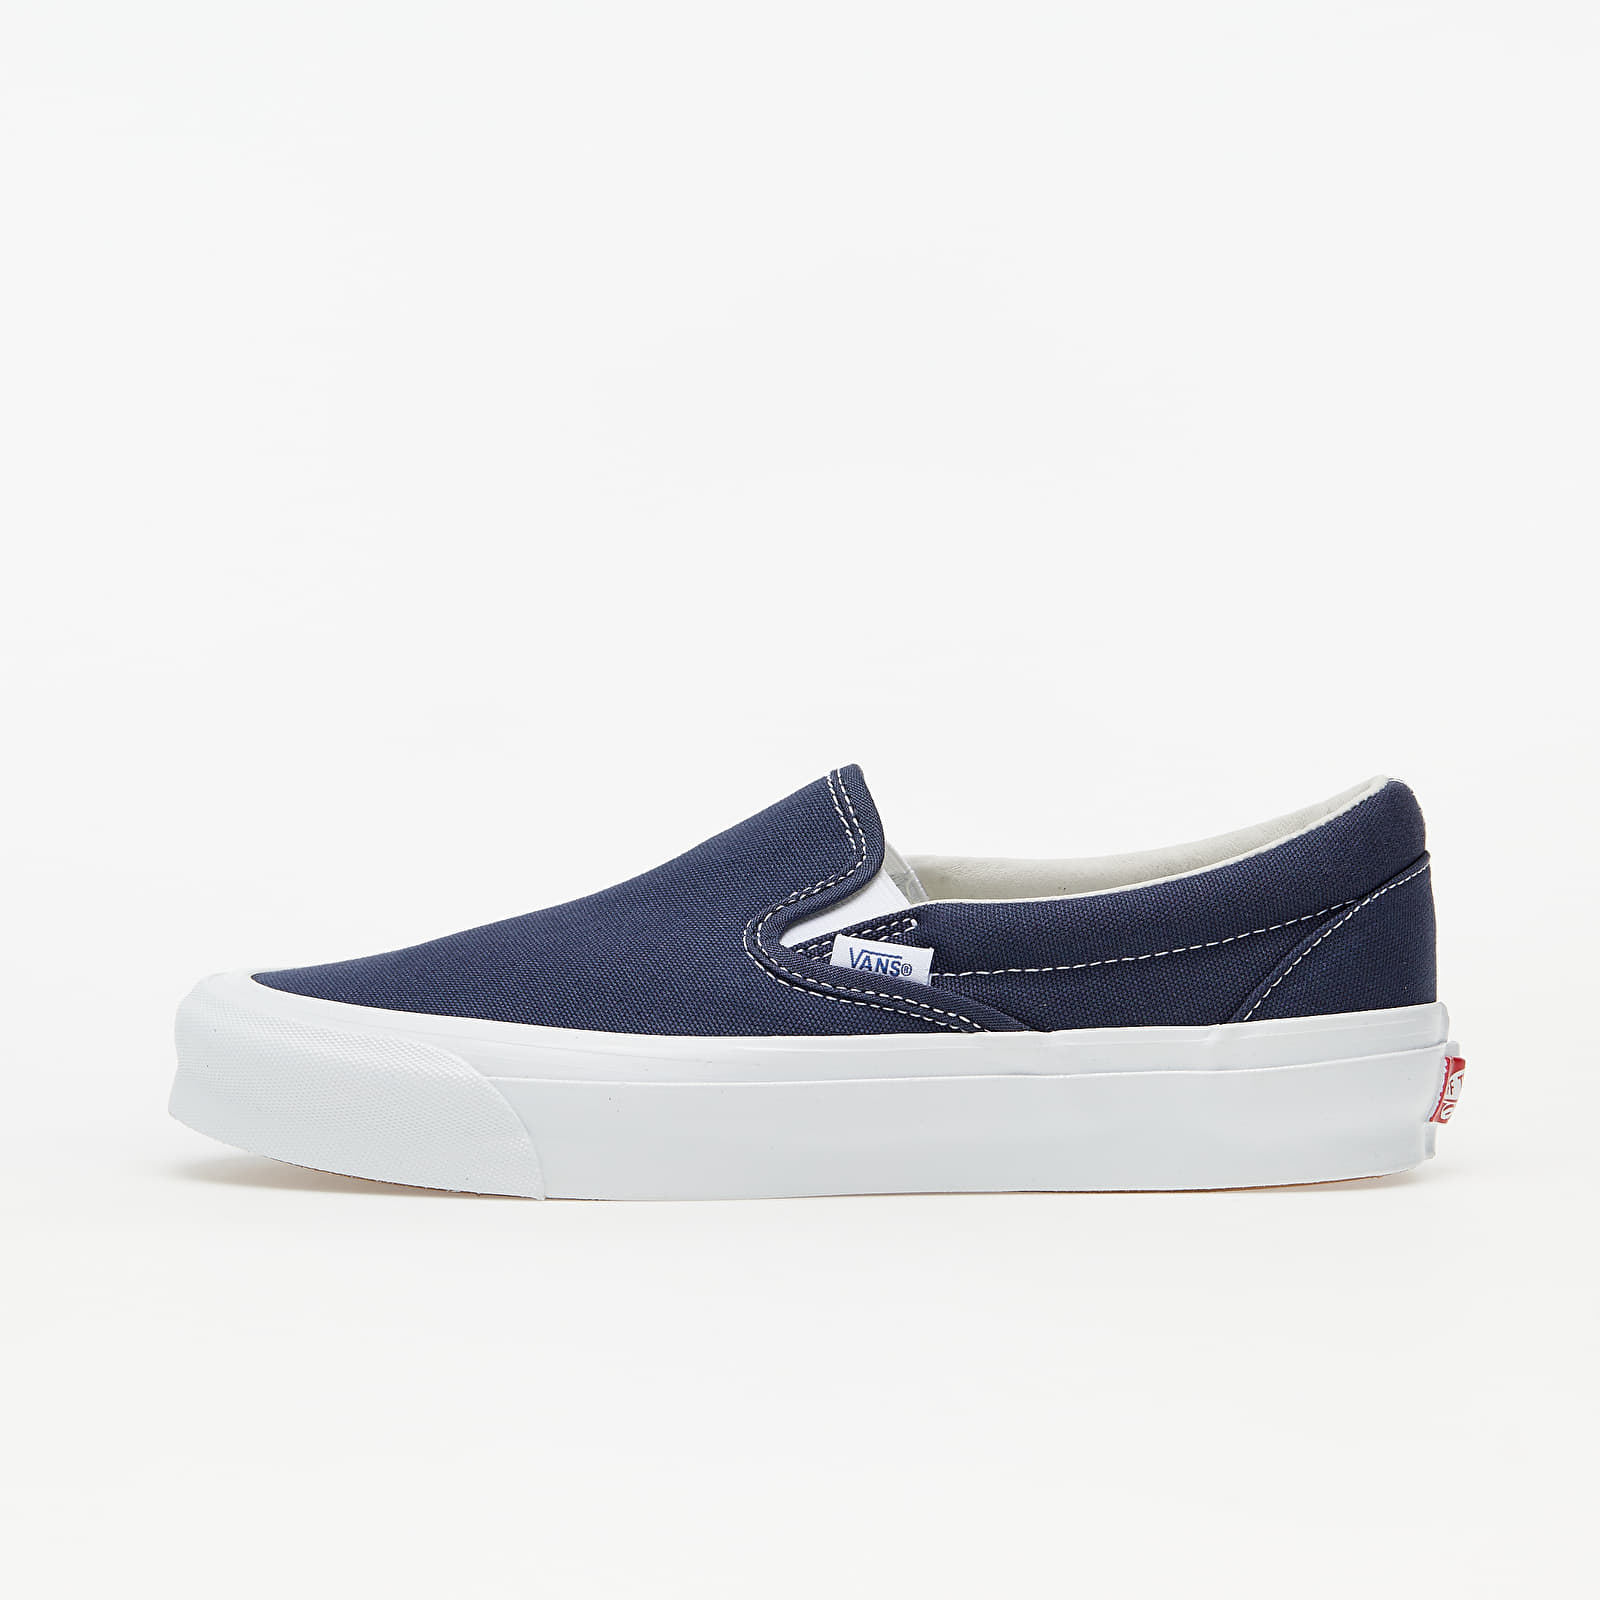 Vans OG Classic Slip-On (Canvas) Navy EUR 36.5